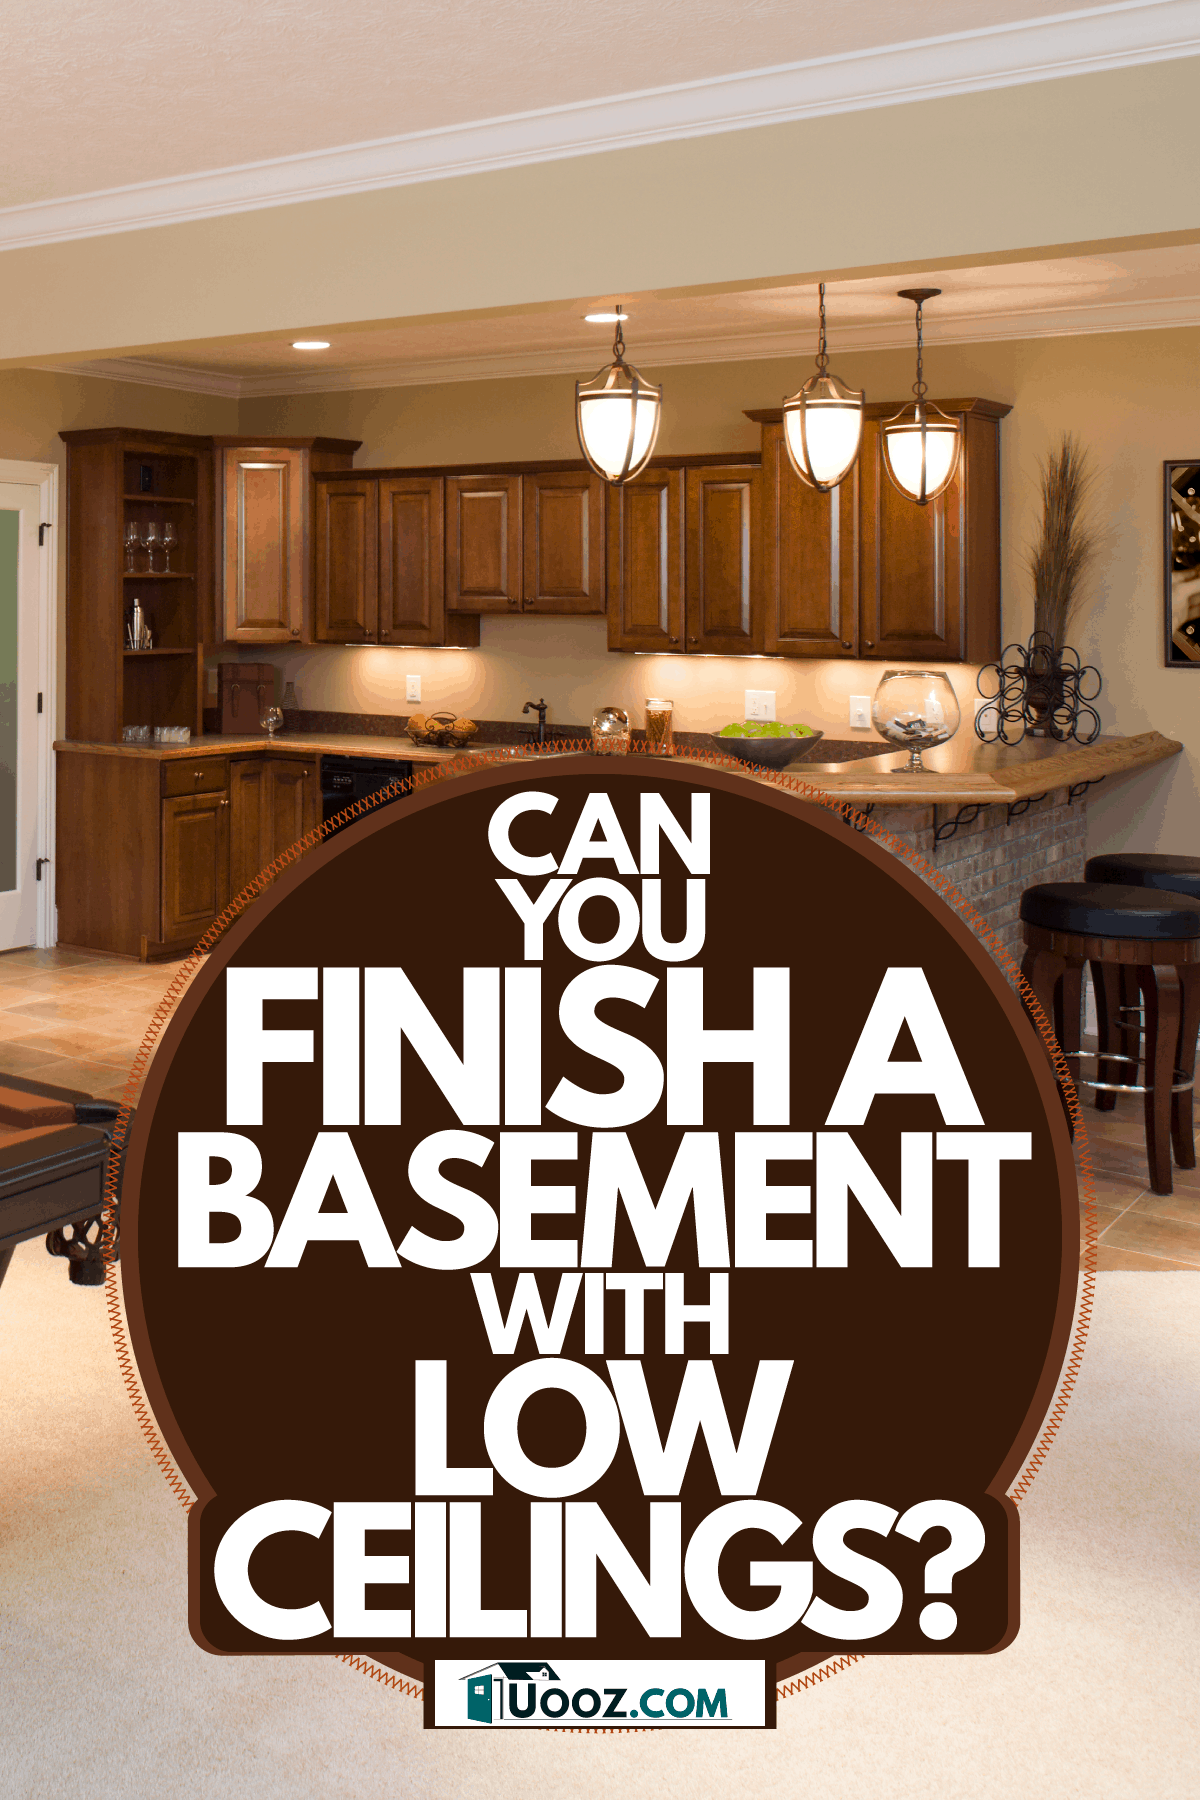 Interior of a basement with an entertainment area, a billiard table, and elegant dangling lights on the pantry area, Can You Finish A Basement With Low Ceilings?